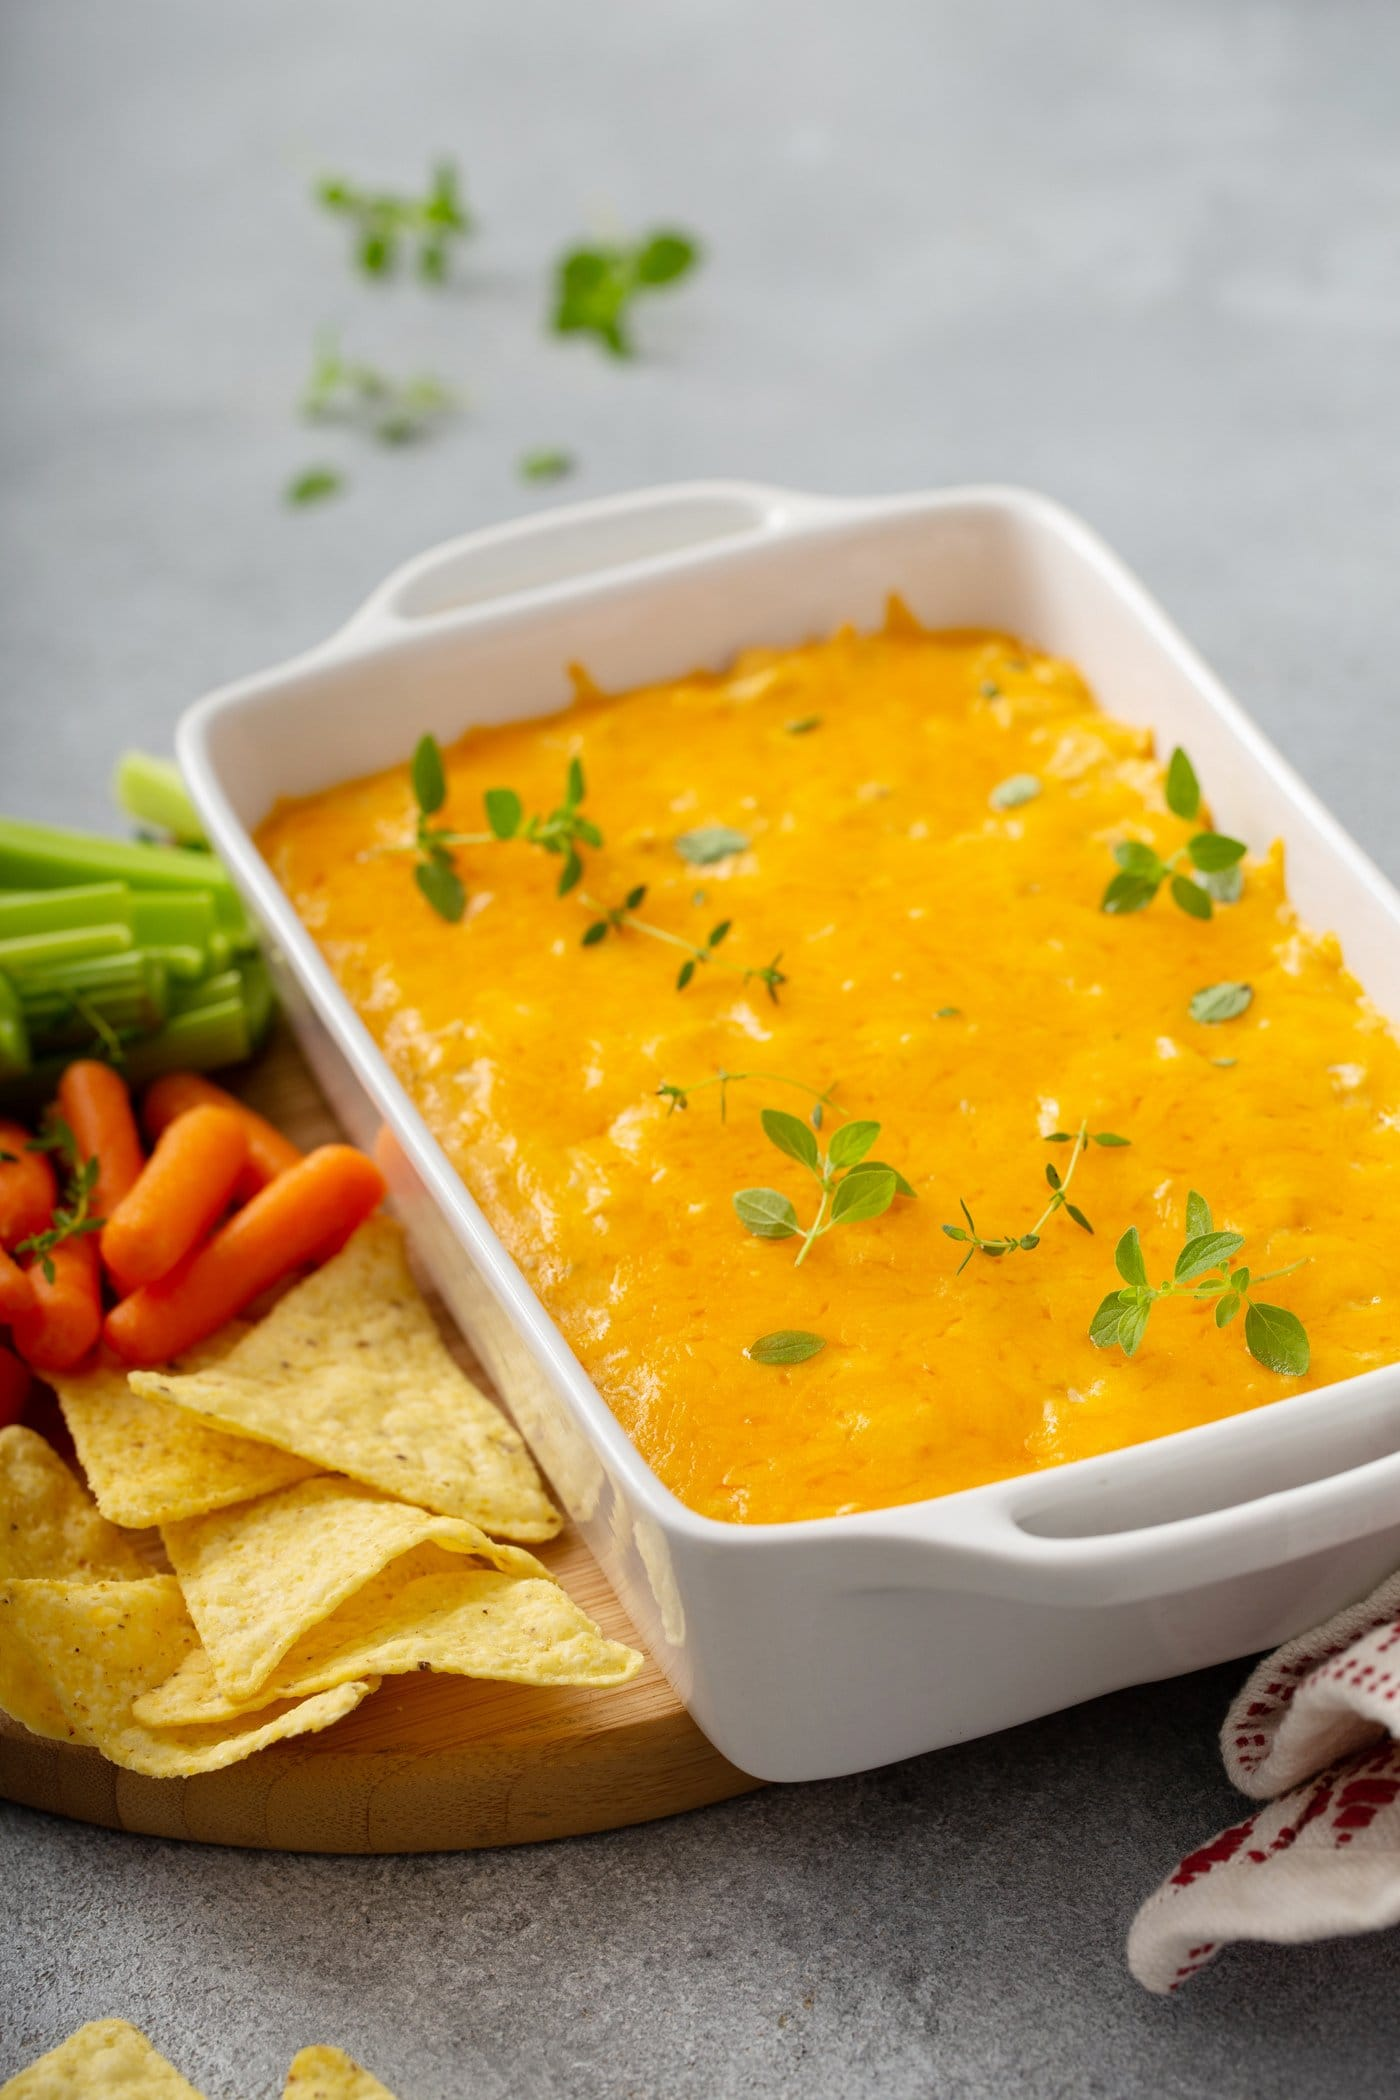 A casserole dish filled with buffalo chicken dip. It is covered with melted cheese and sprinkles of parsley on top. There are chips, carrot sticks, and celery sticks next to the dish of dip.